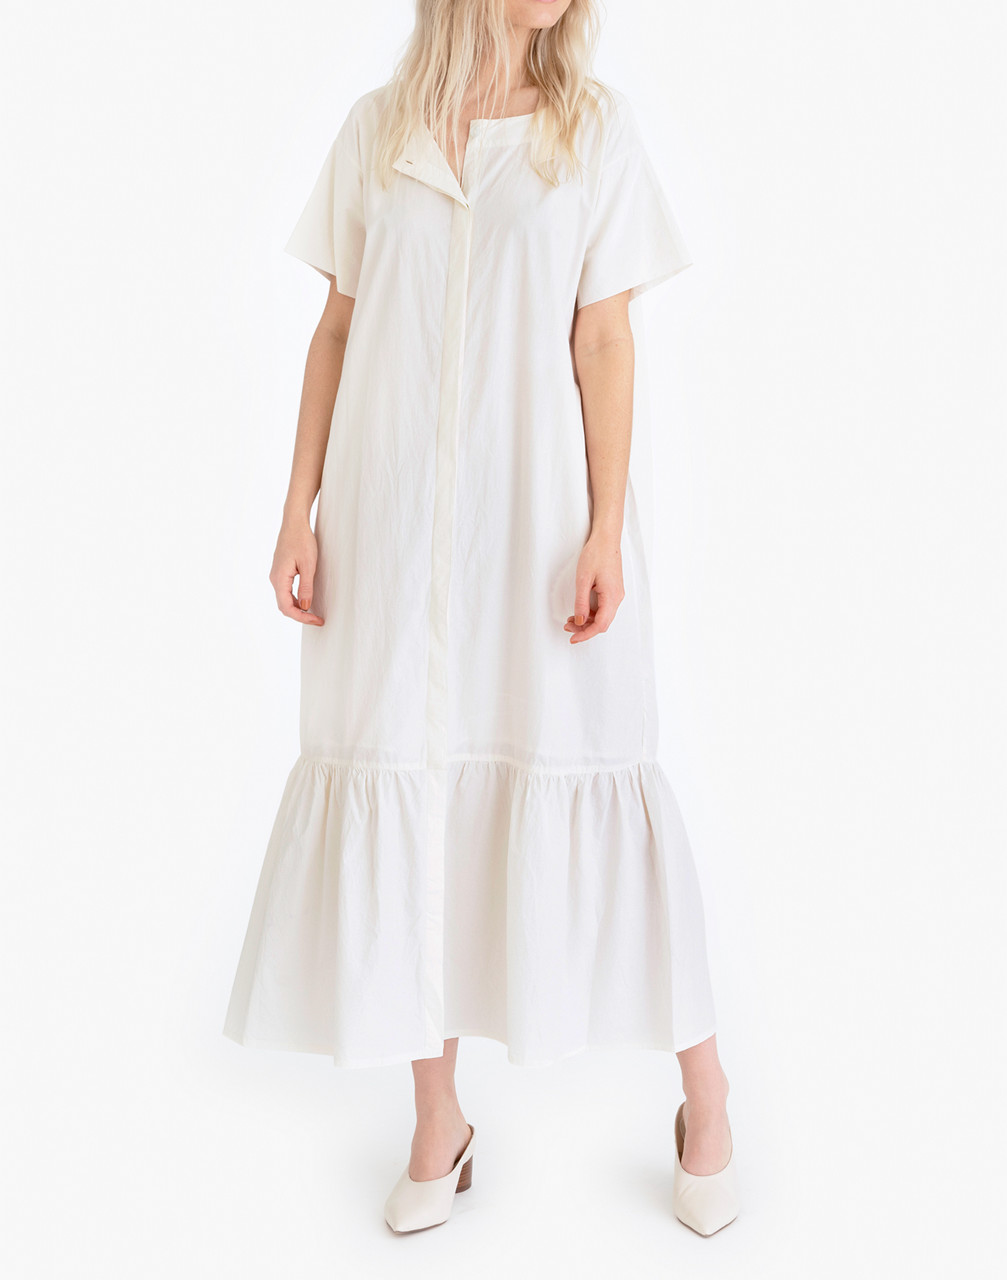 70s Dresses – Disco Dress, Hippie Dress, Wrap Dress Tribe Alivetrade Poplin Midi Shirtdress $198.00 AT vintagedancer.com